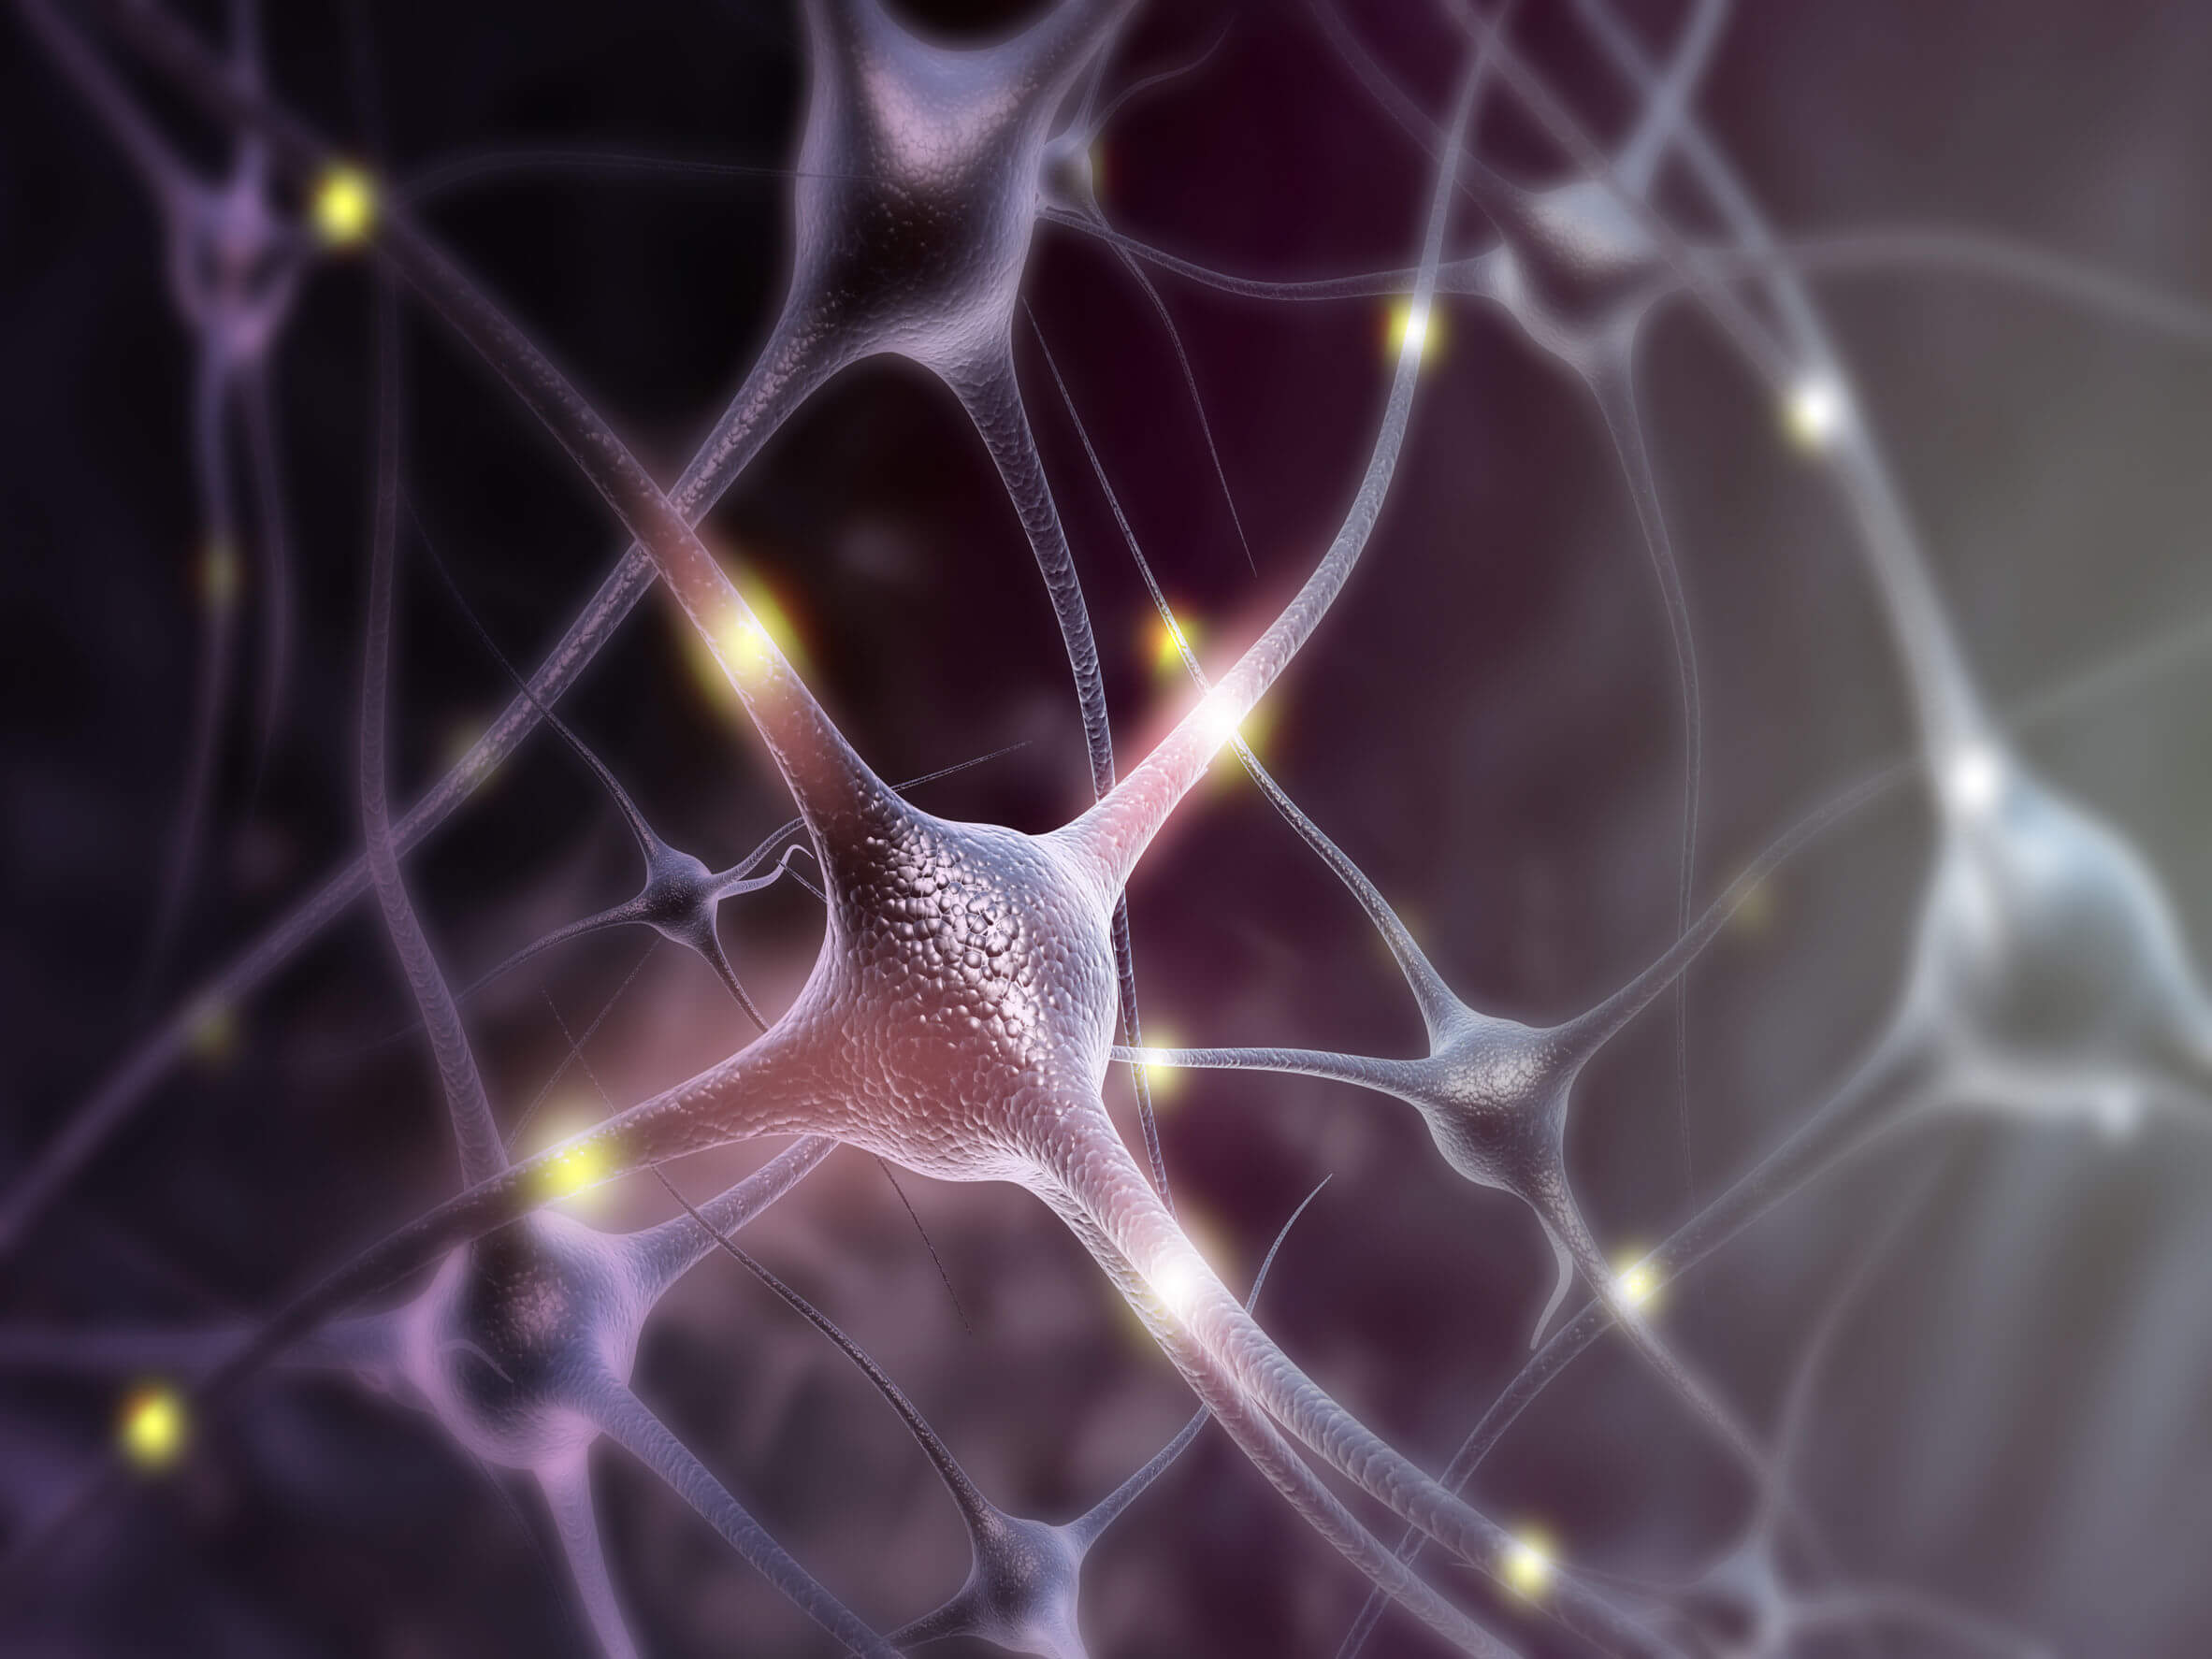 The neurotrophic factor can influence the activity of neurons.